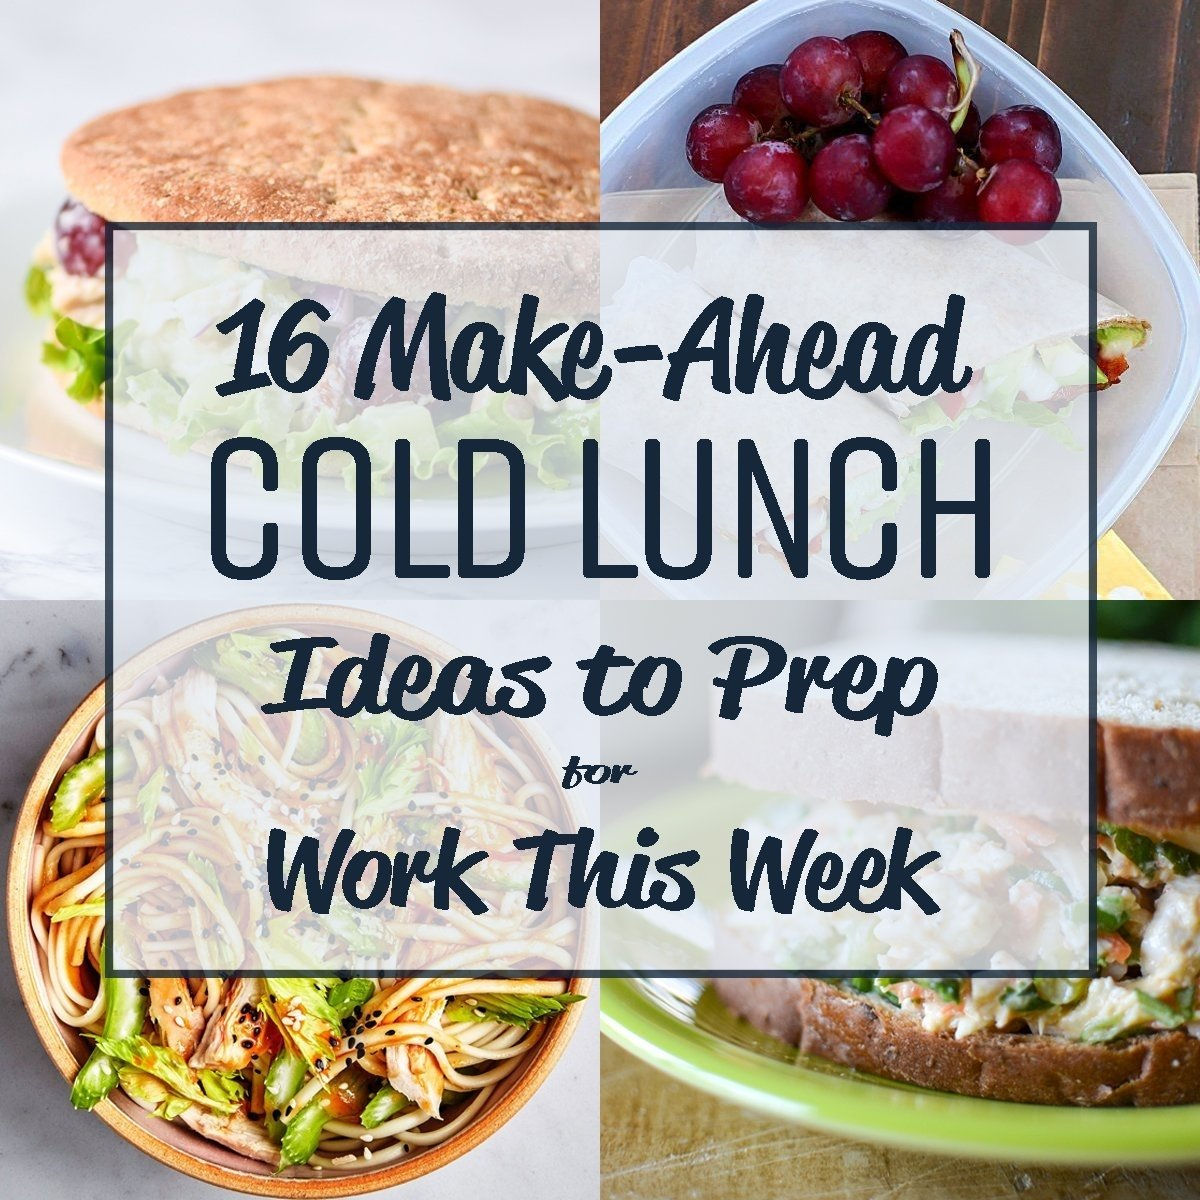 10 Most Recommended Ideas For Lunch At Work 16 make ahead cold lunch ideas to prep for work this week 4 2020